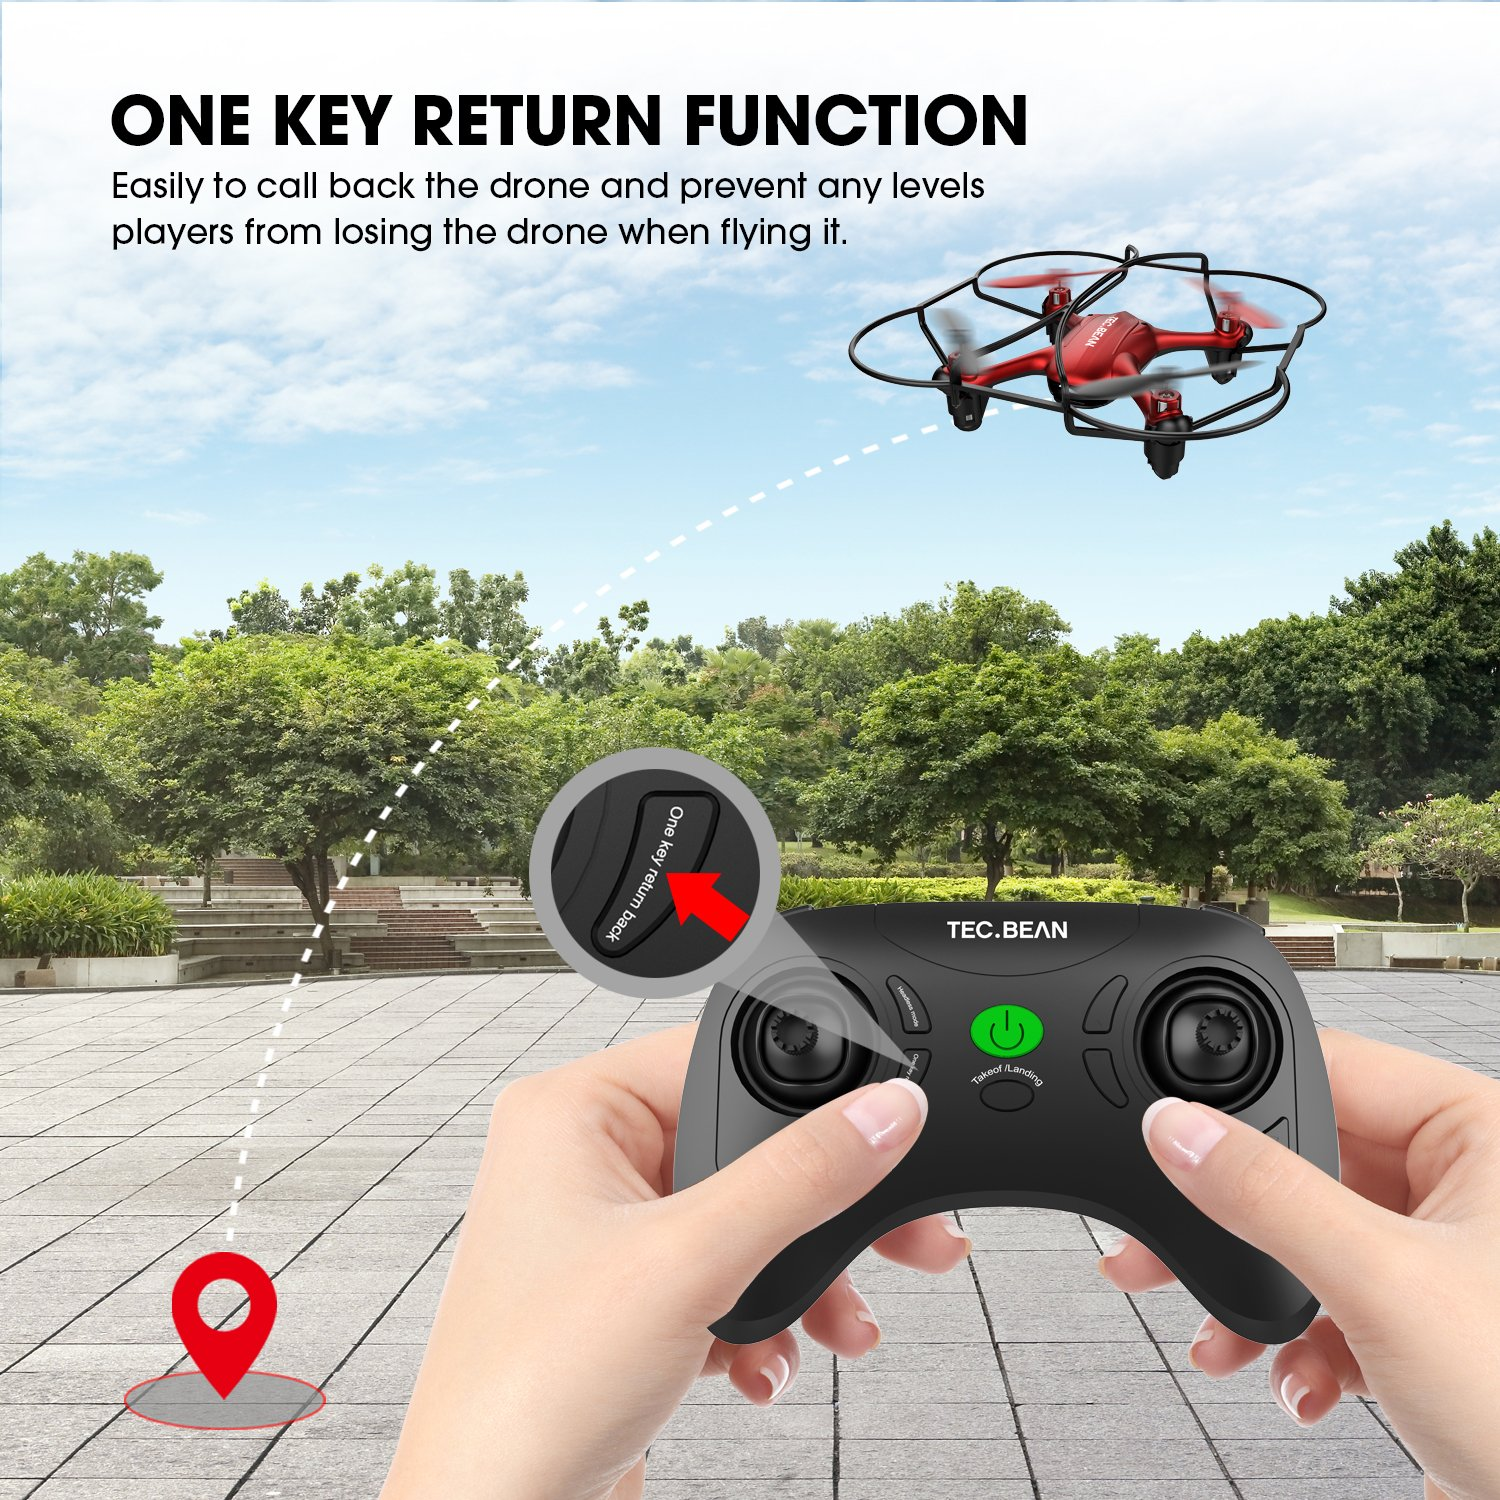 TEC.BEAN Mini Drone for Beginners Hovering Quadcopter with Altitude Hold Mode One Key Take Off Landing Return Home Entry Level for Kids by TEC.BEAN (Image #2)